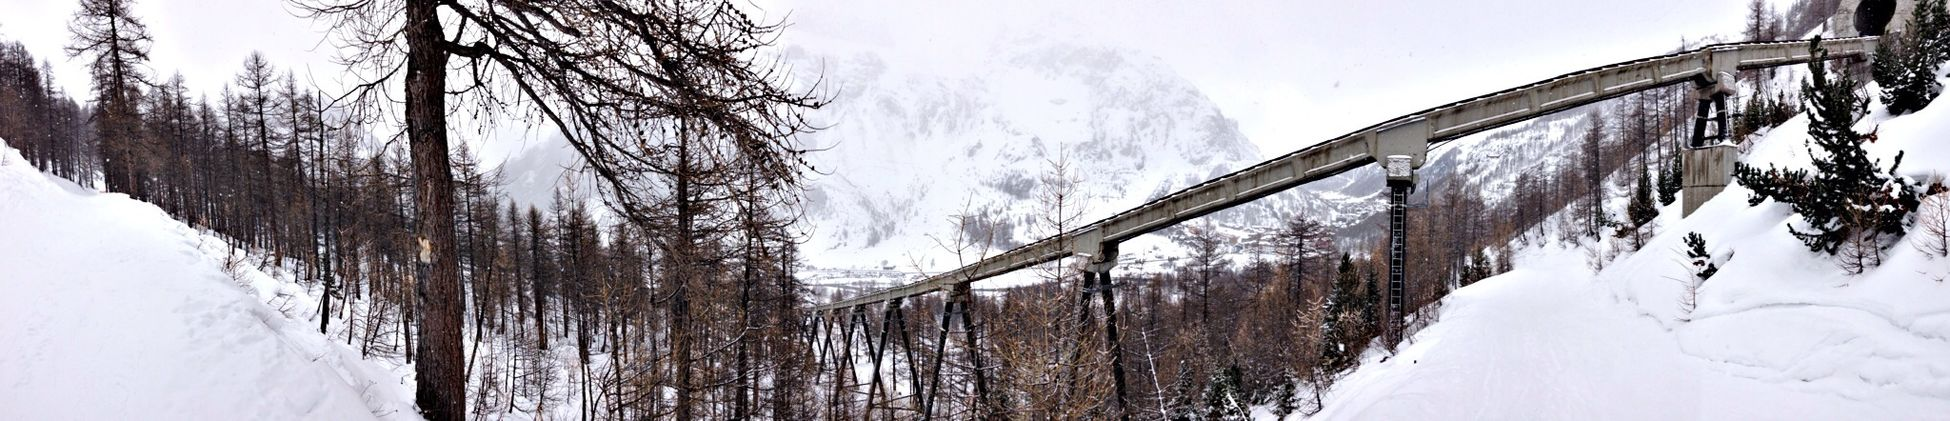 Panoramic Funiculaire  Mountain Winter